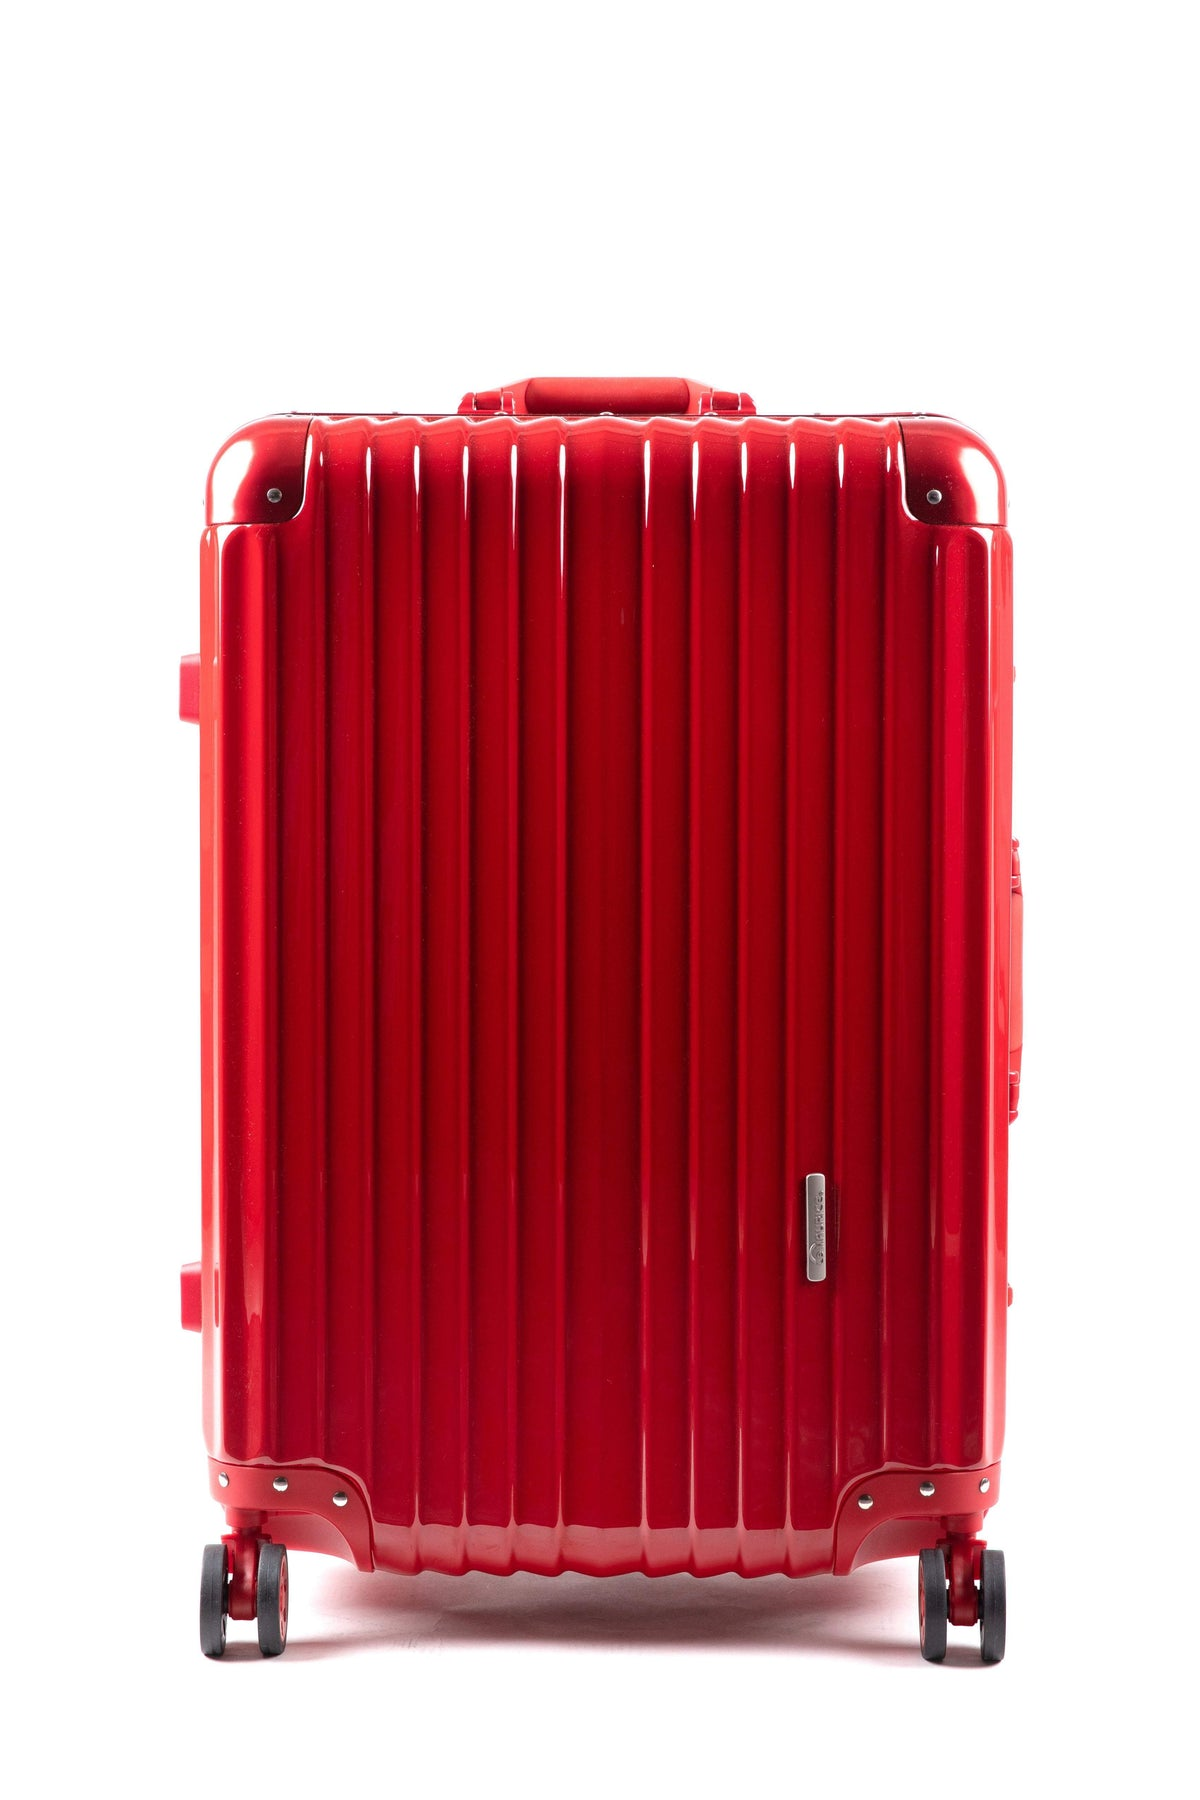 Suitcase Club | Buy Luggage, Suitcases & Backpacks Alumetal